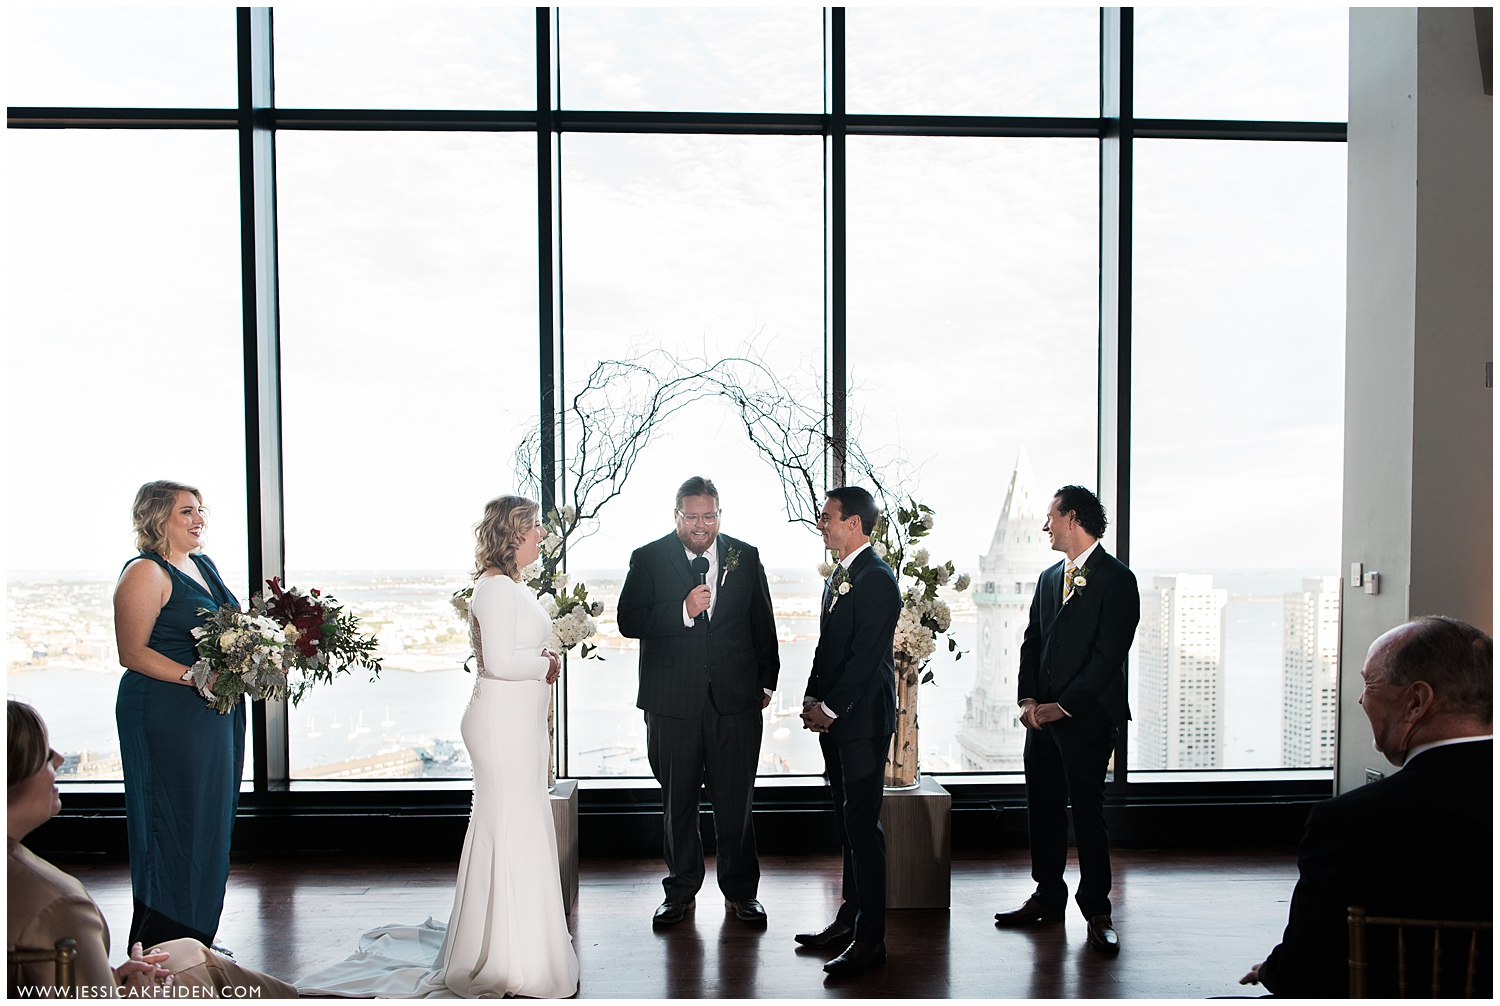 Jessica K Feiden Photography_The State Room Boston Wedding Photographer_0040.jpg